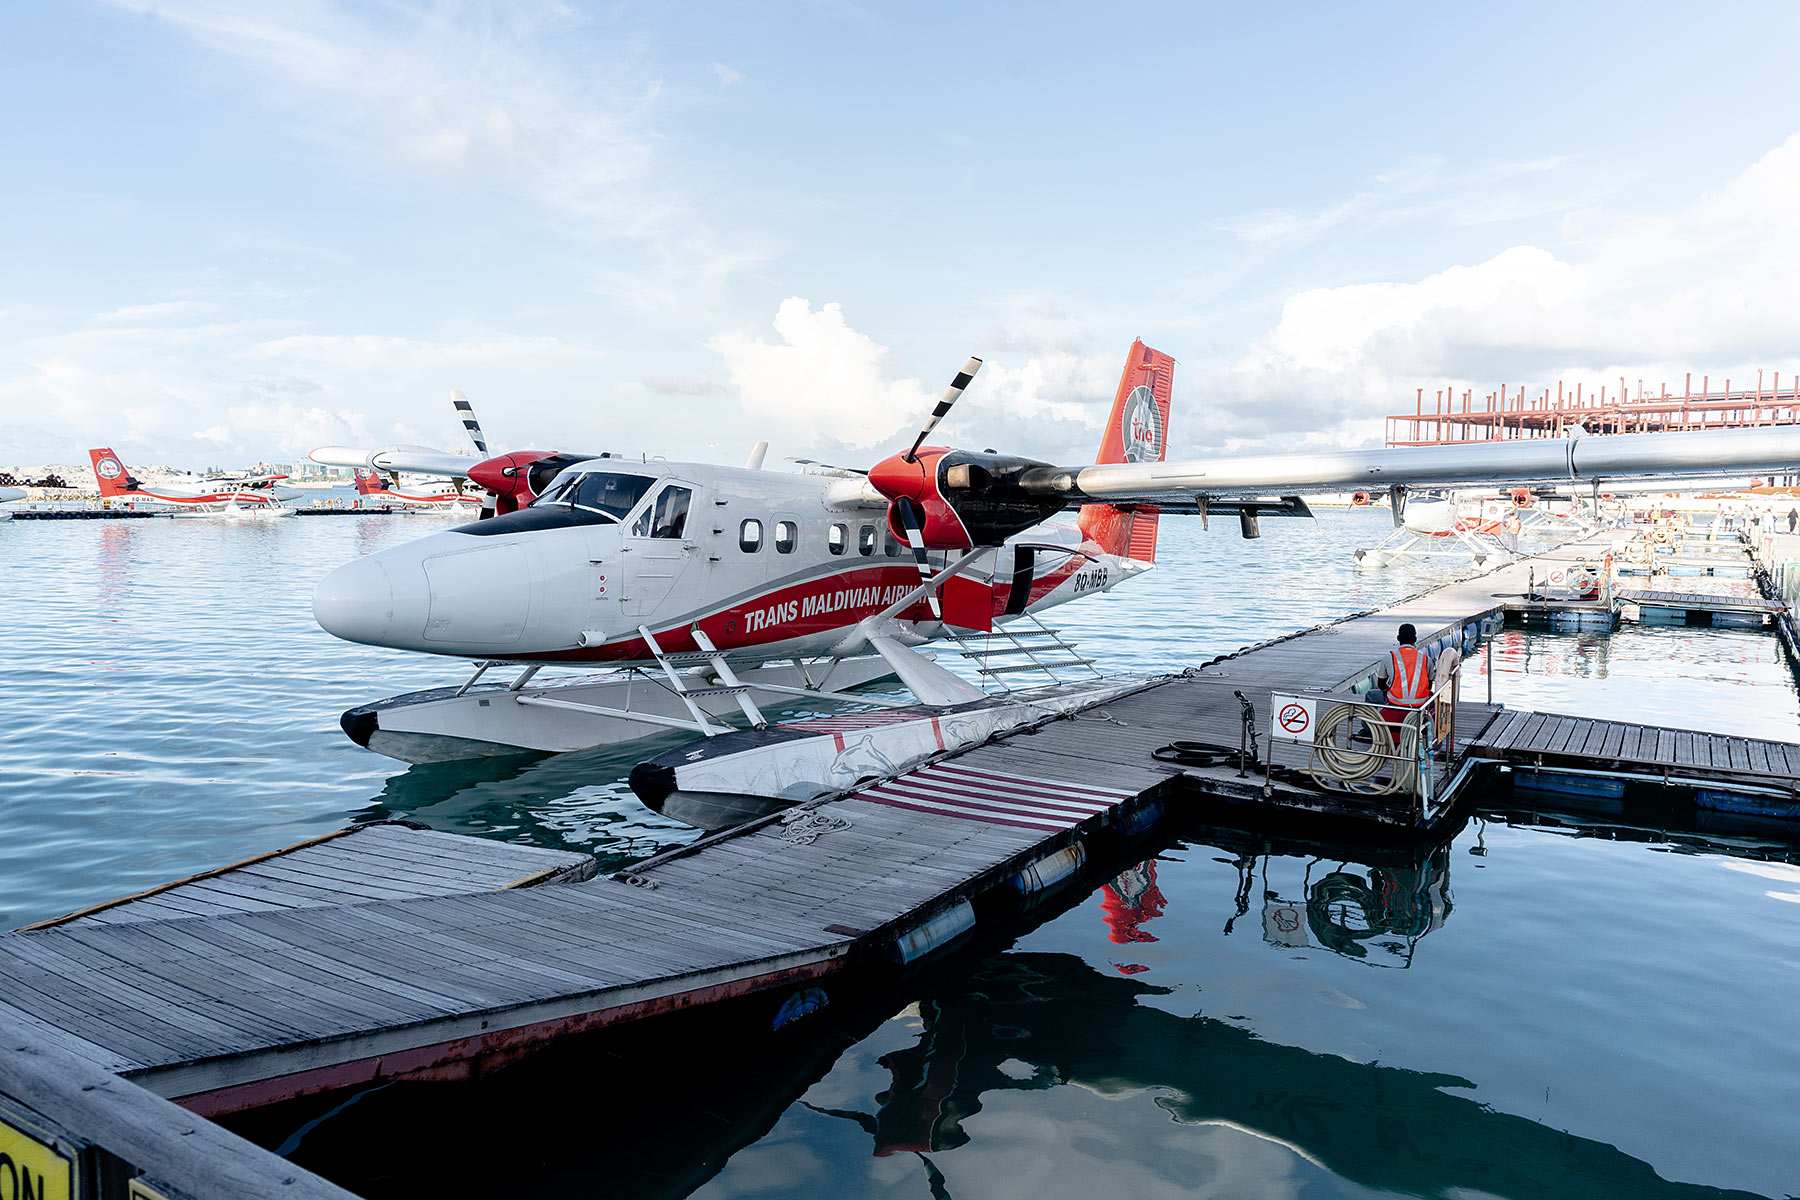 wasserflugzeug malediven trans maldivian airways travel blog sunnyinga